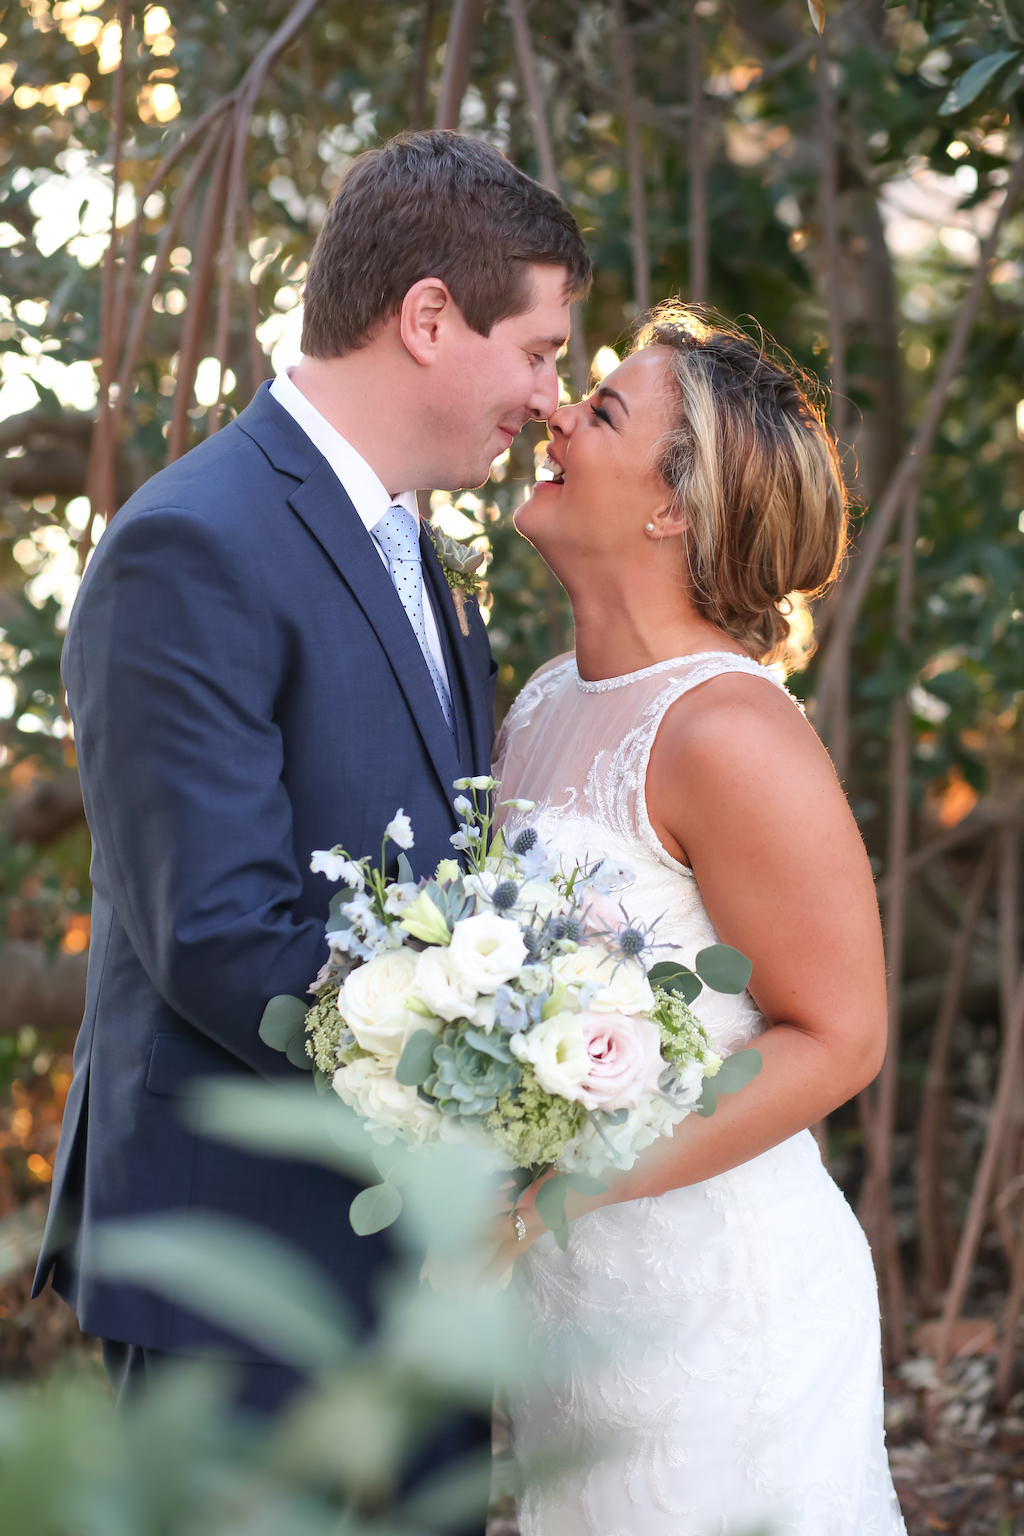 Outdoor Garden Wedding Portrait with White Rose and Natural Greenery Bouquet, Bride in Lace Dress | St Petersburg Wedding Photographer Lifelong Photography Studio | Hair and Makeup Lindsay Does Makeup LDM Beauty Group